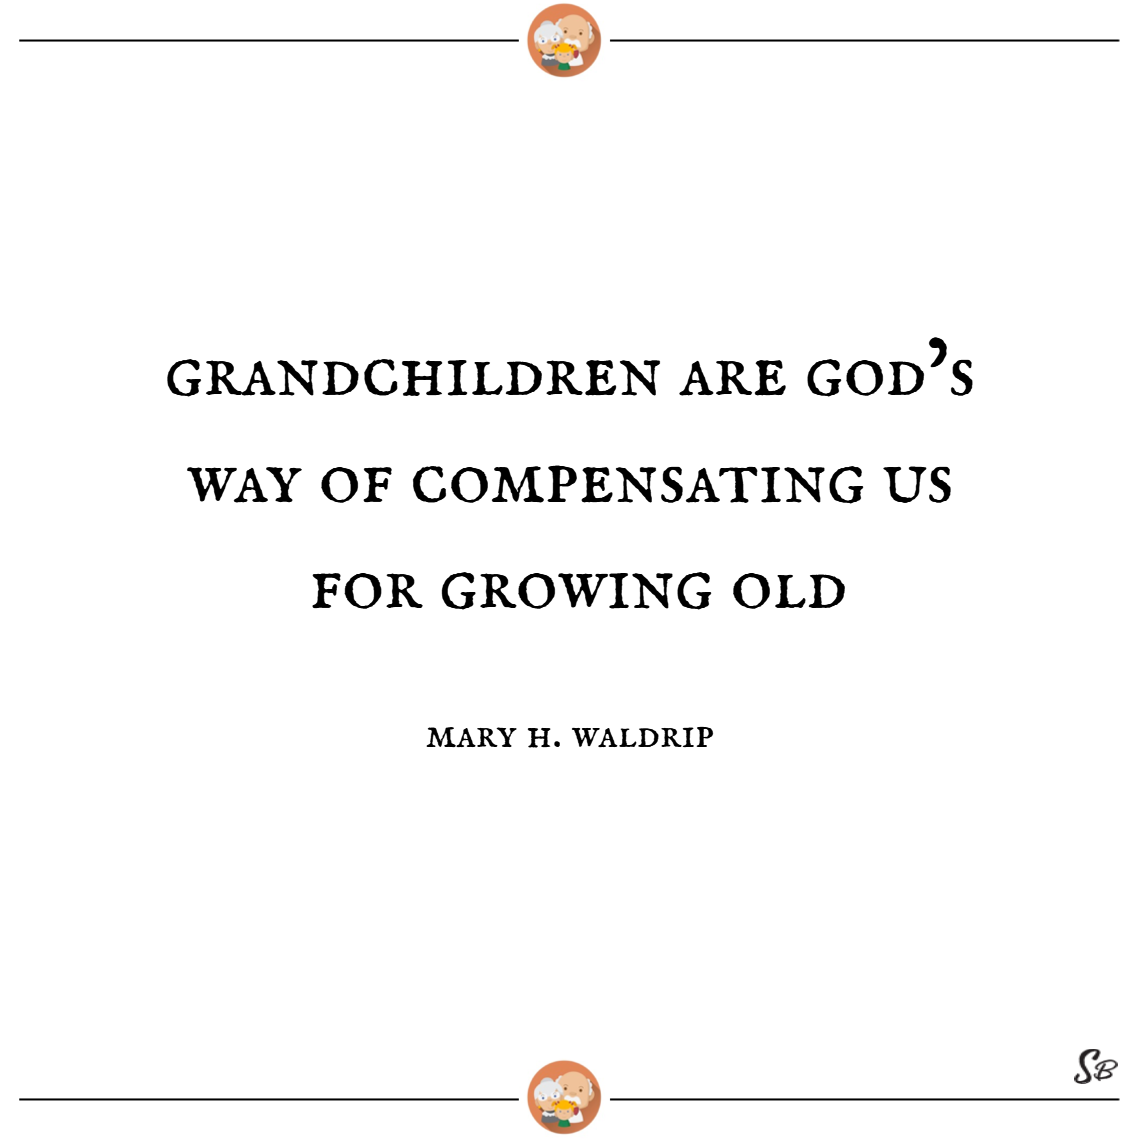 Grandchildren are god's way of compensating us for growing old. – mary h. waldrip